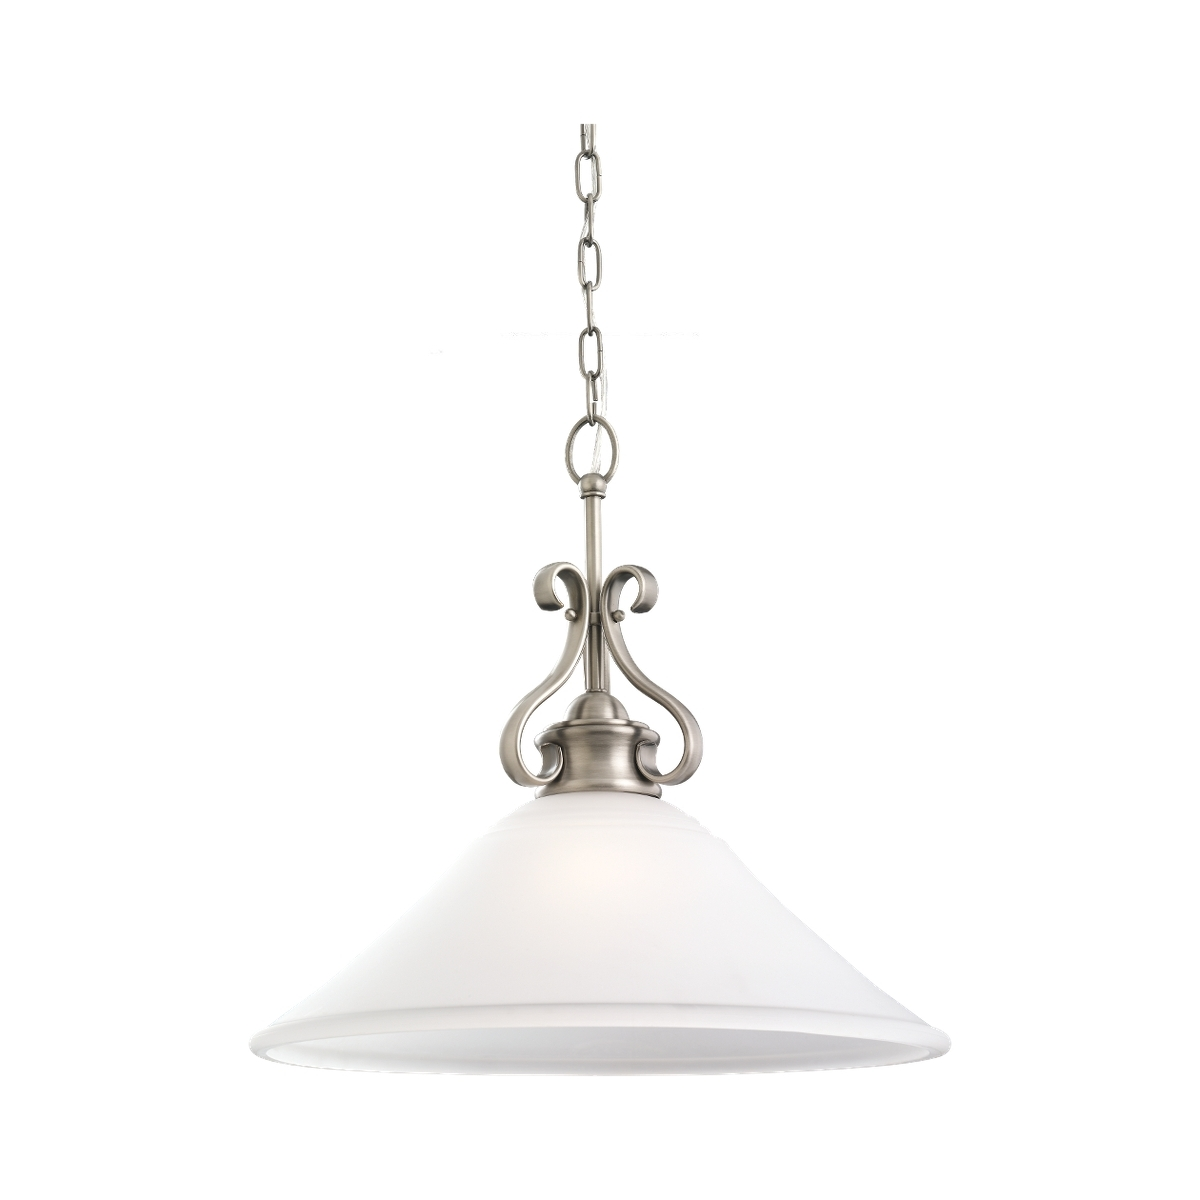 Sea Gull 65380-965 Parkview 1 Light 19 inch Antique Brushed Nickel Pendant Ceiling Light in Satin Etched Glass, Standard photo